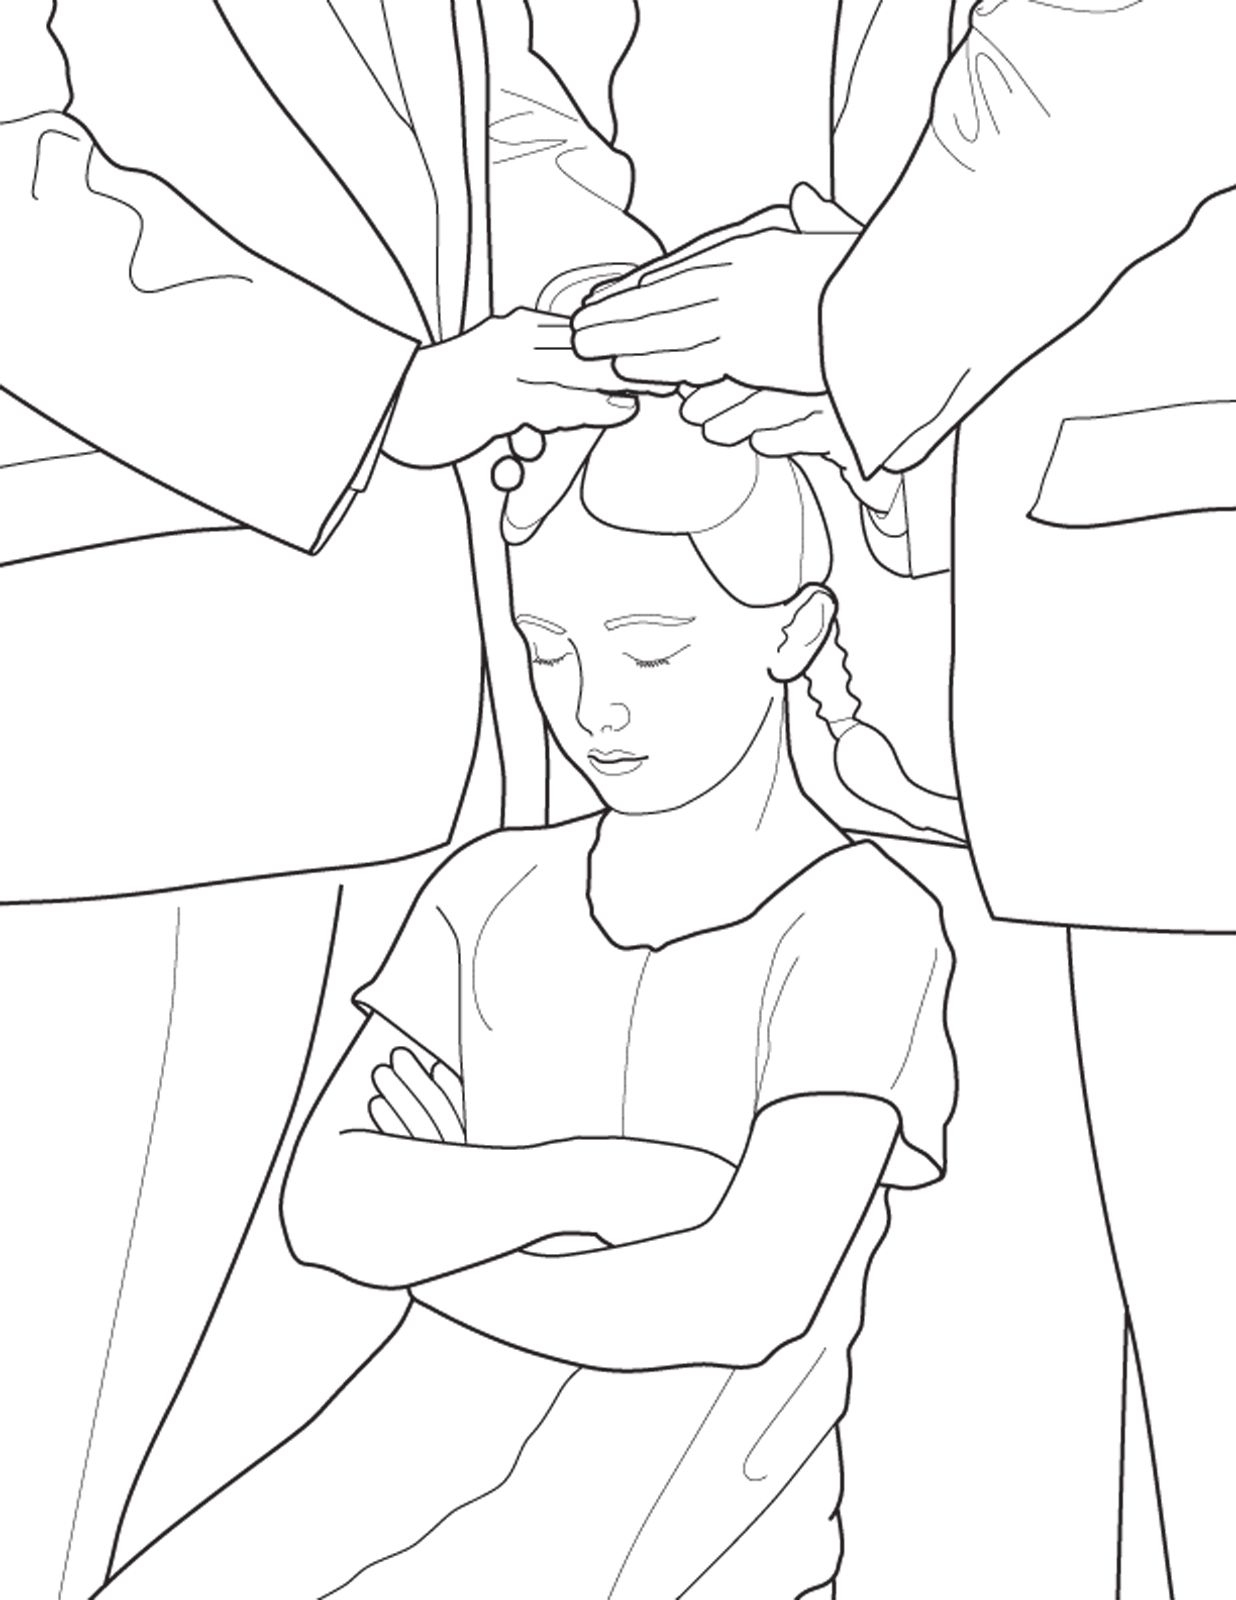 jesus heals jairus daughter coloring pages Download-A Primary coloring page from the LDS Church A girl is confirmed following baptism 19-c